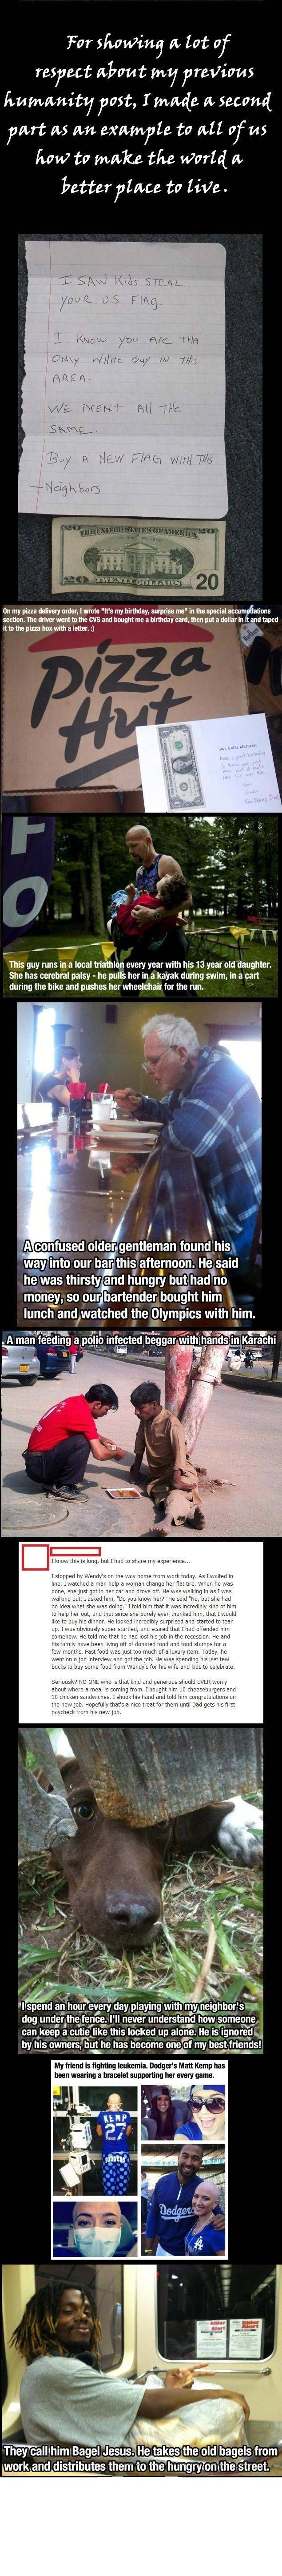 Humanity part 2